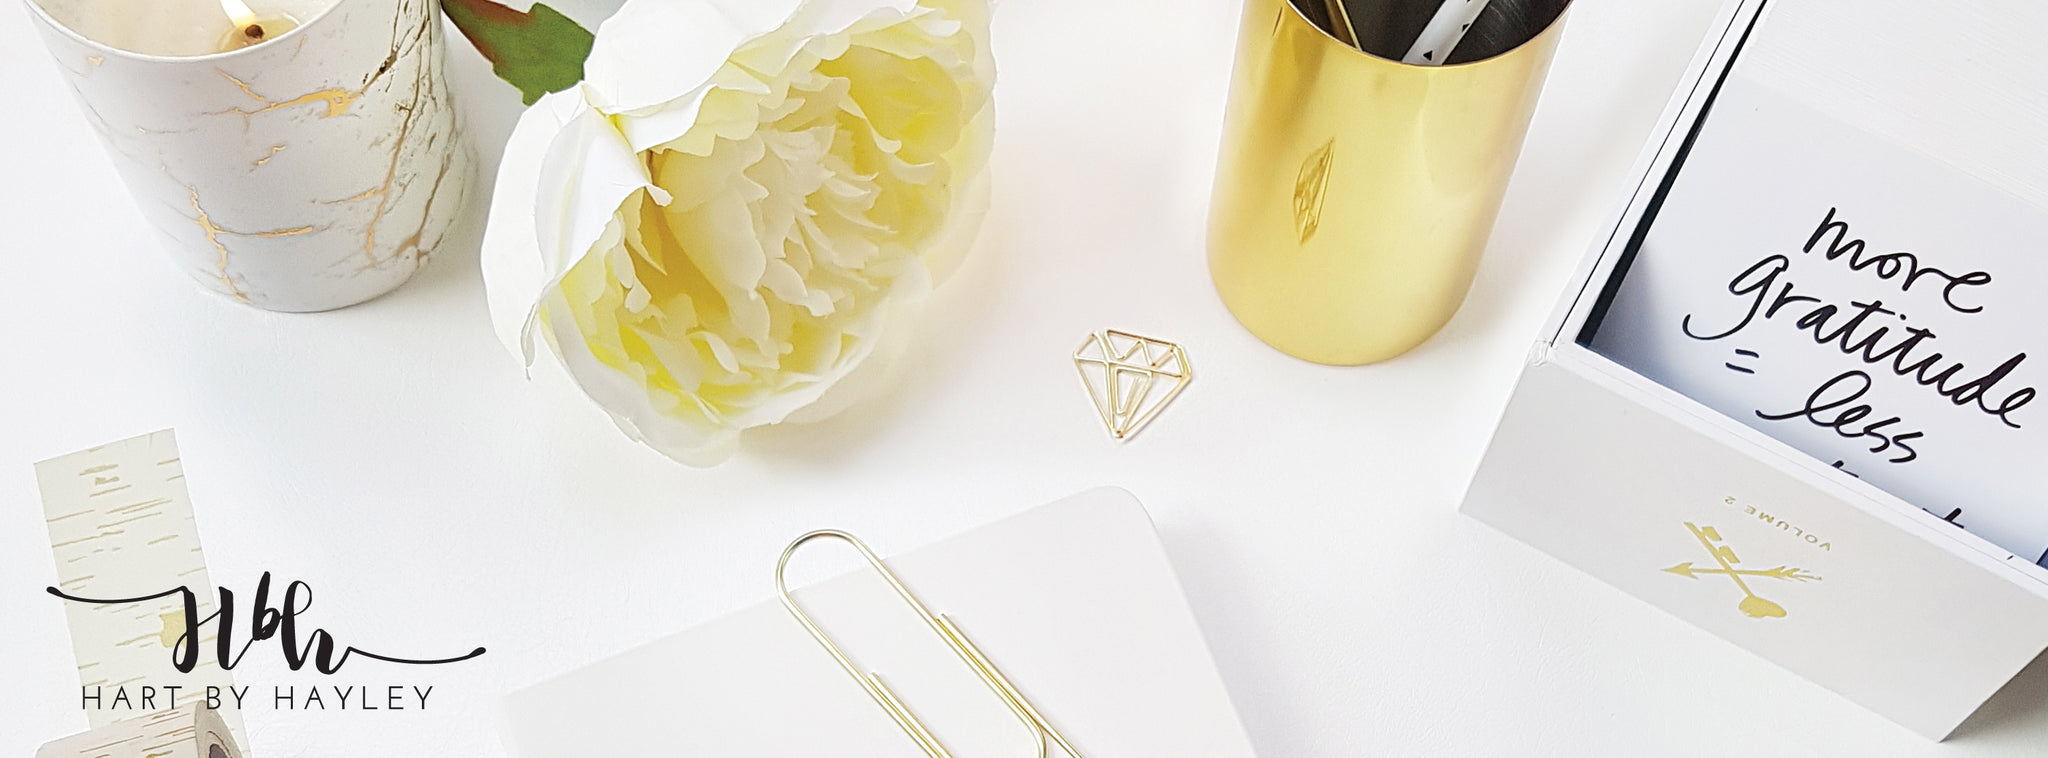 Relaxing white desk banner with gold accessories.